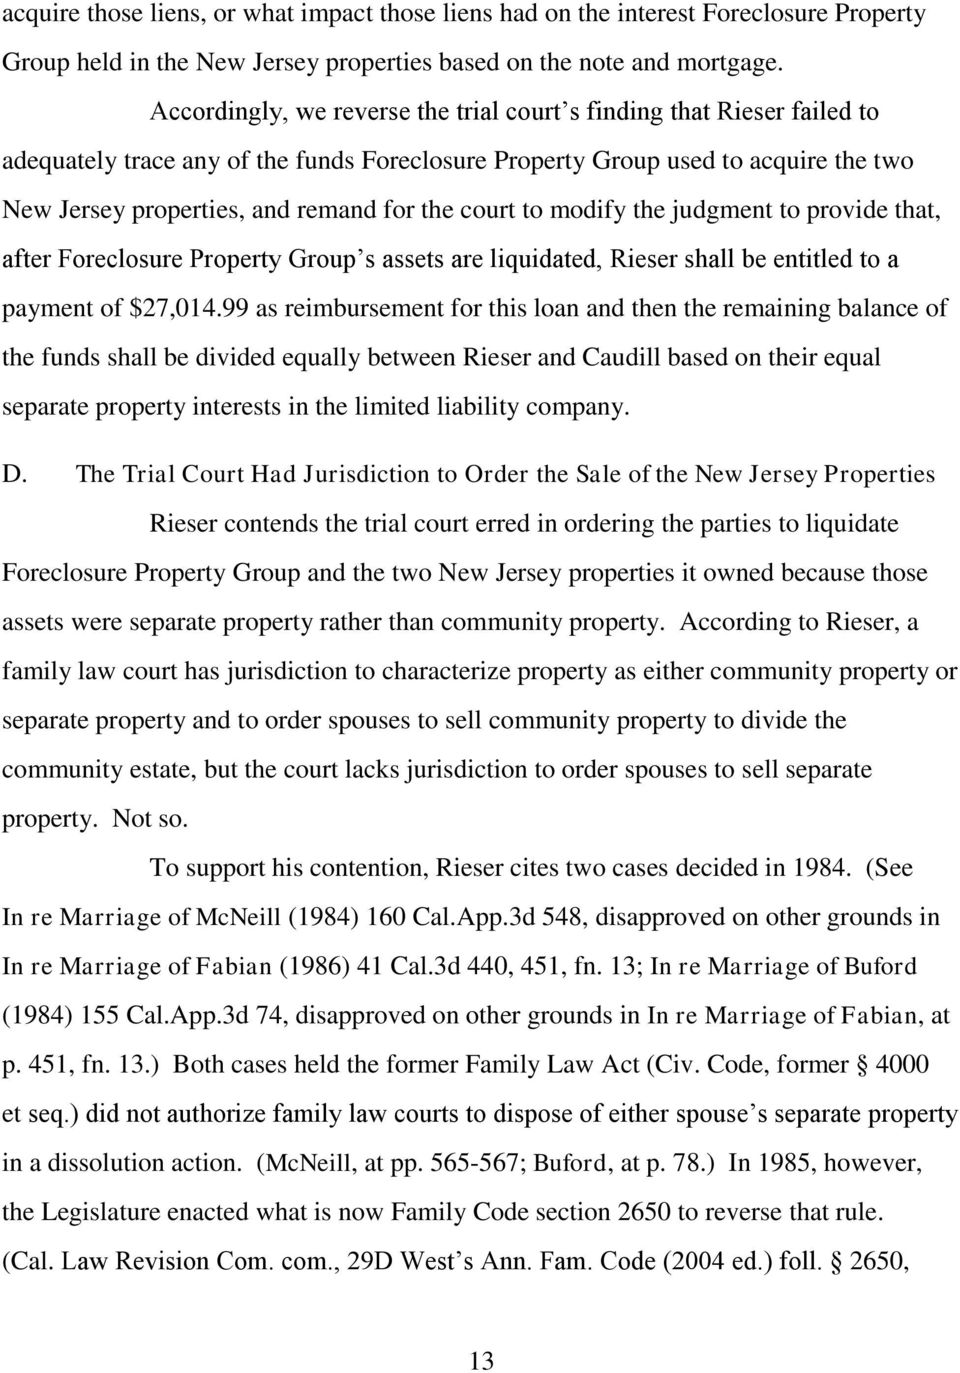 court to modify the judgment to provide that, after Foreclosure Property Group s assets are liquidated, Rieser shall be entitled to a payment of $27,014.